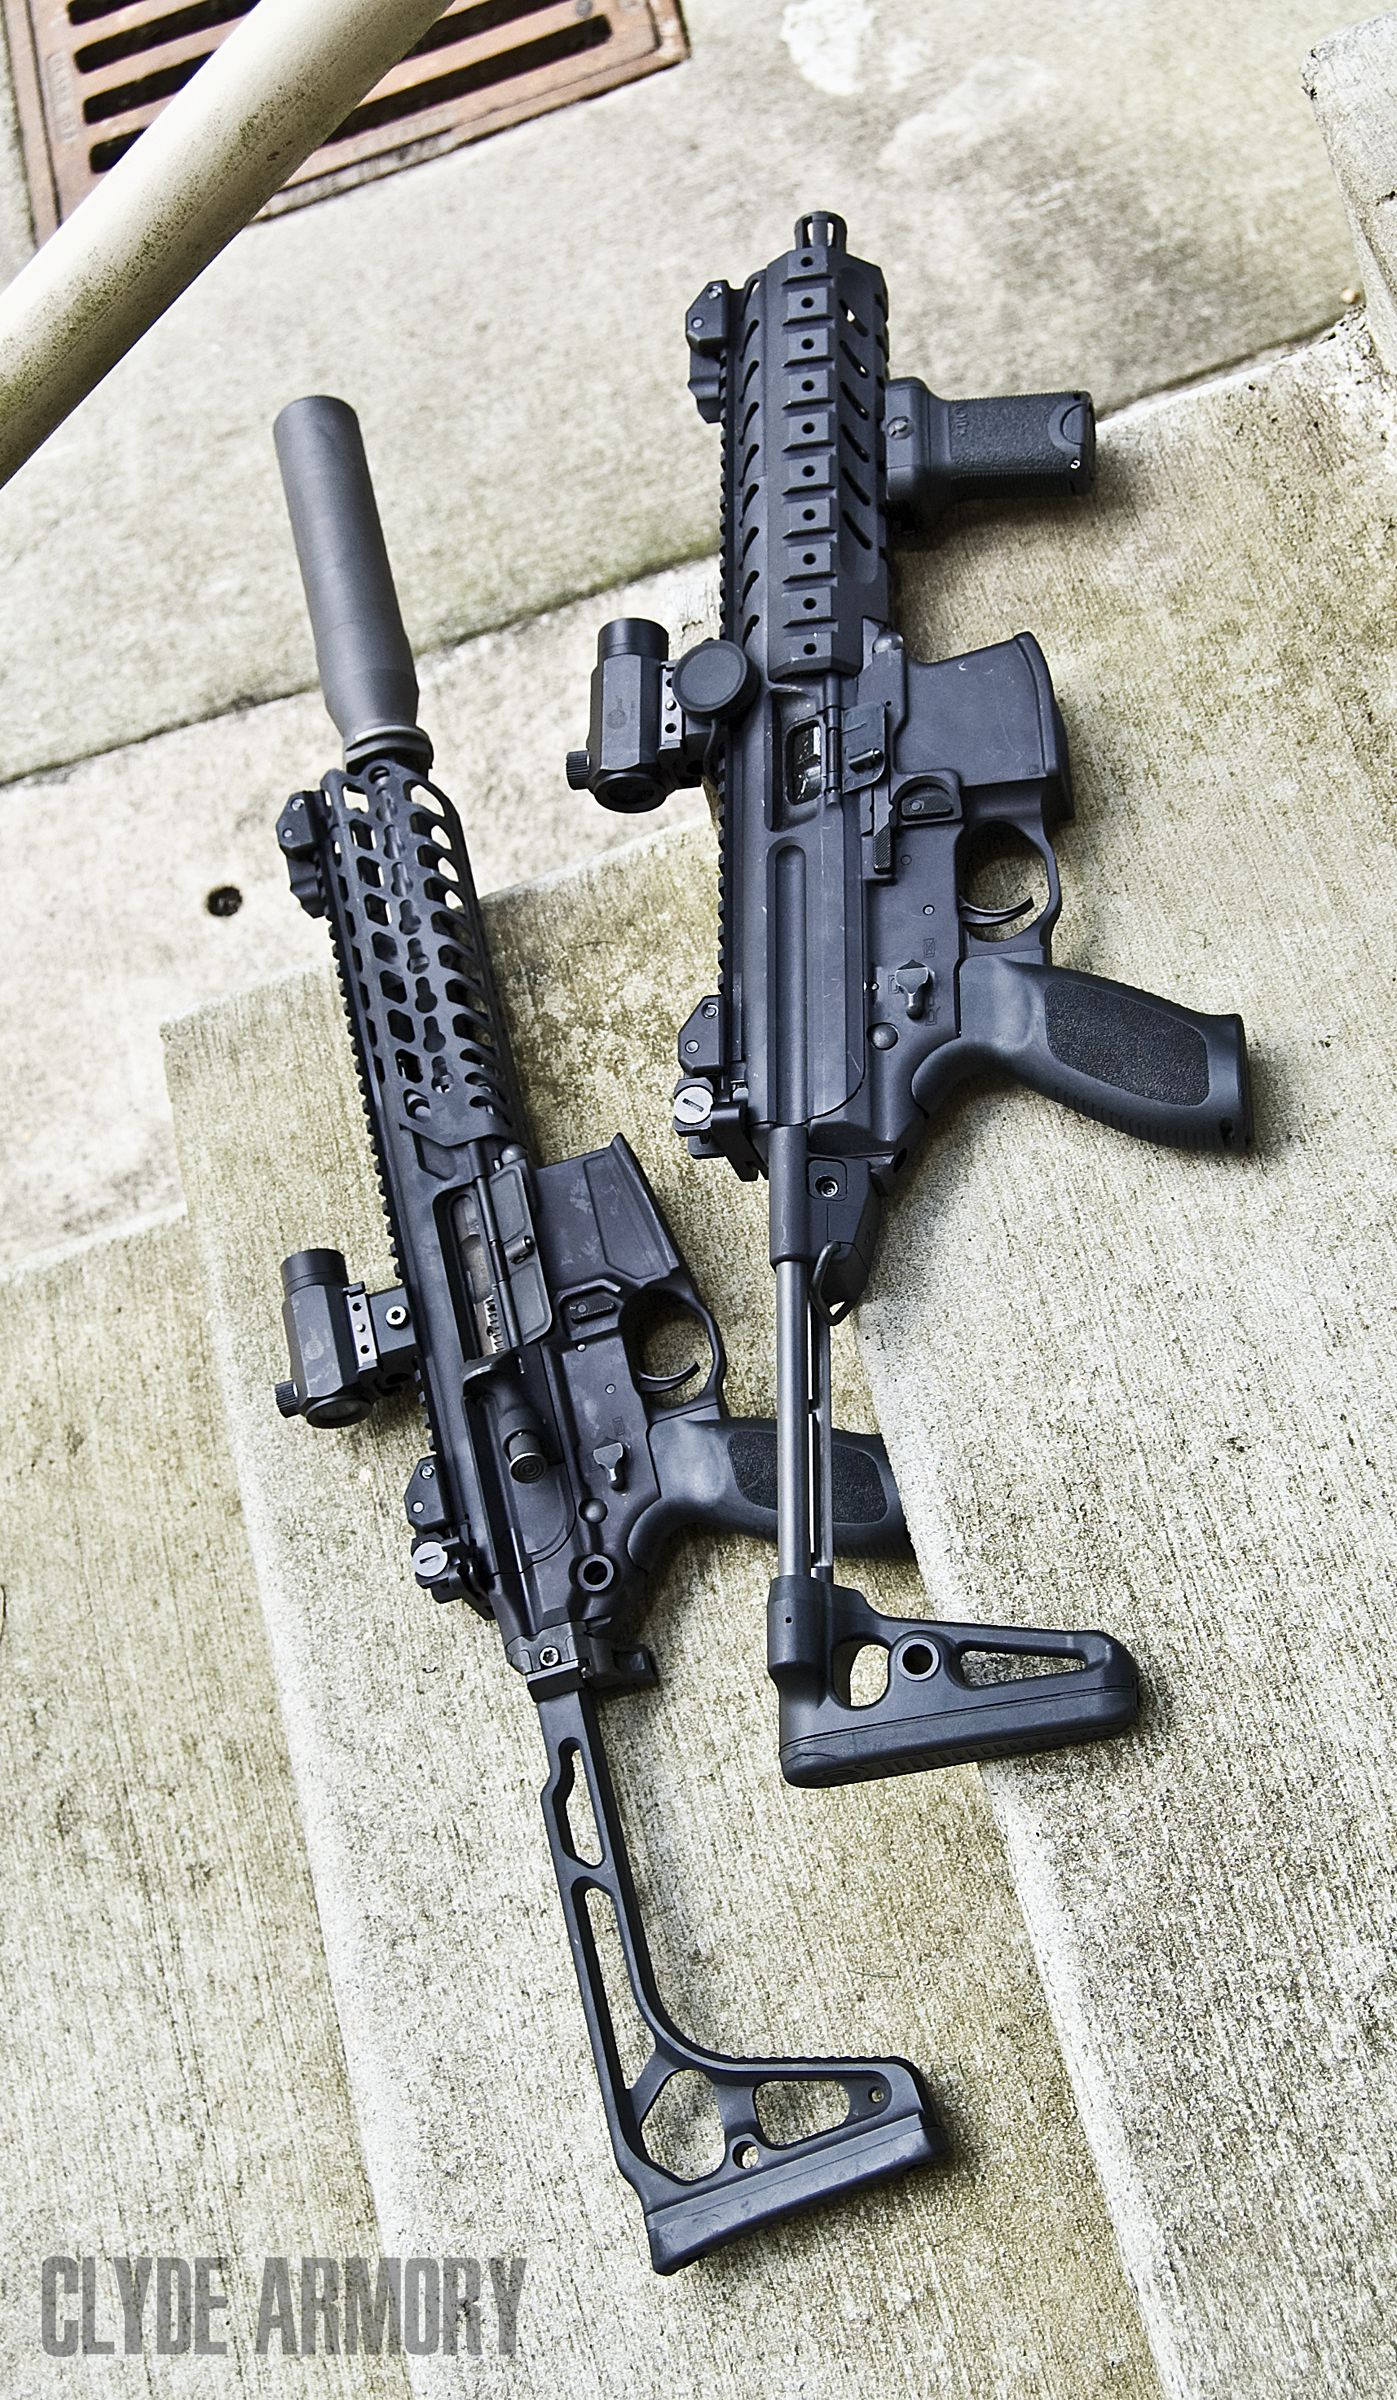 sig sauer s new mcx sbr with one of their suppressors and a select